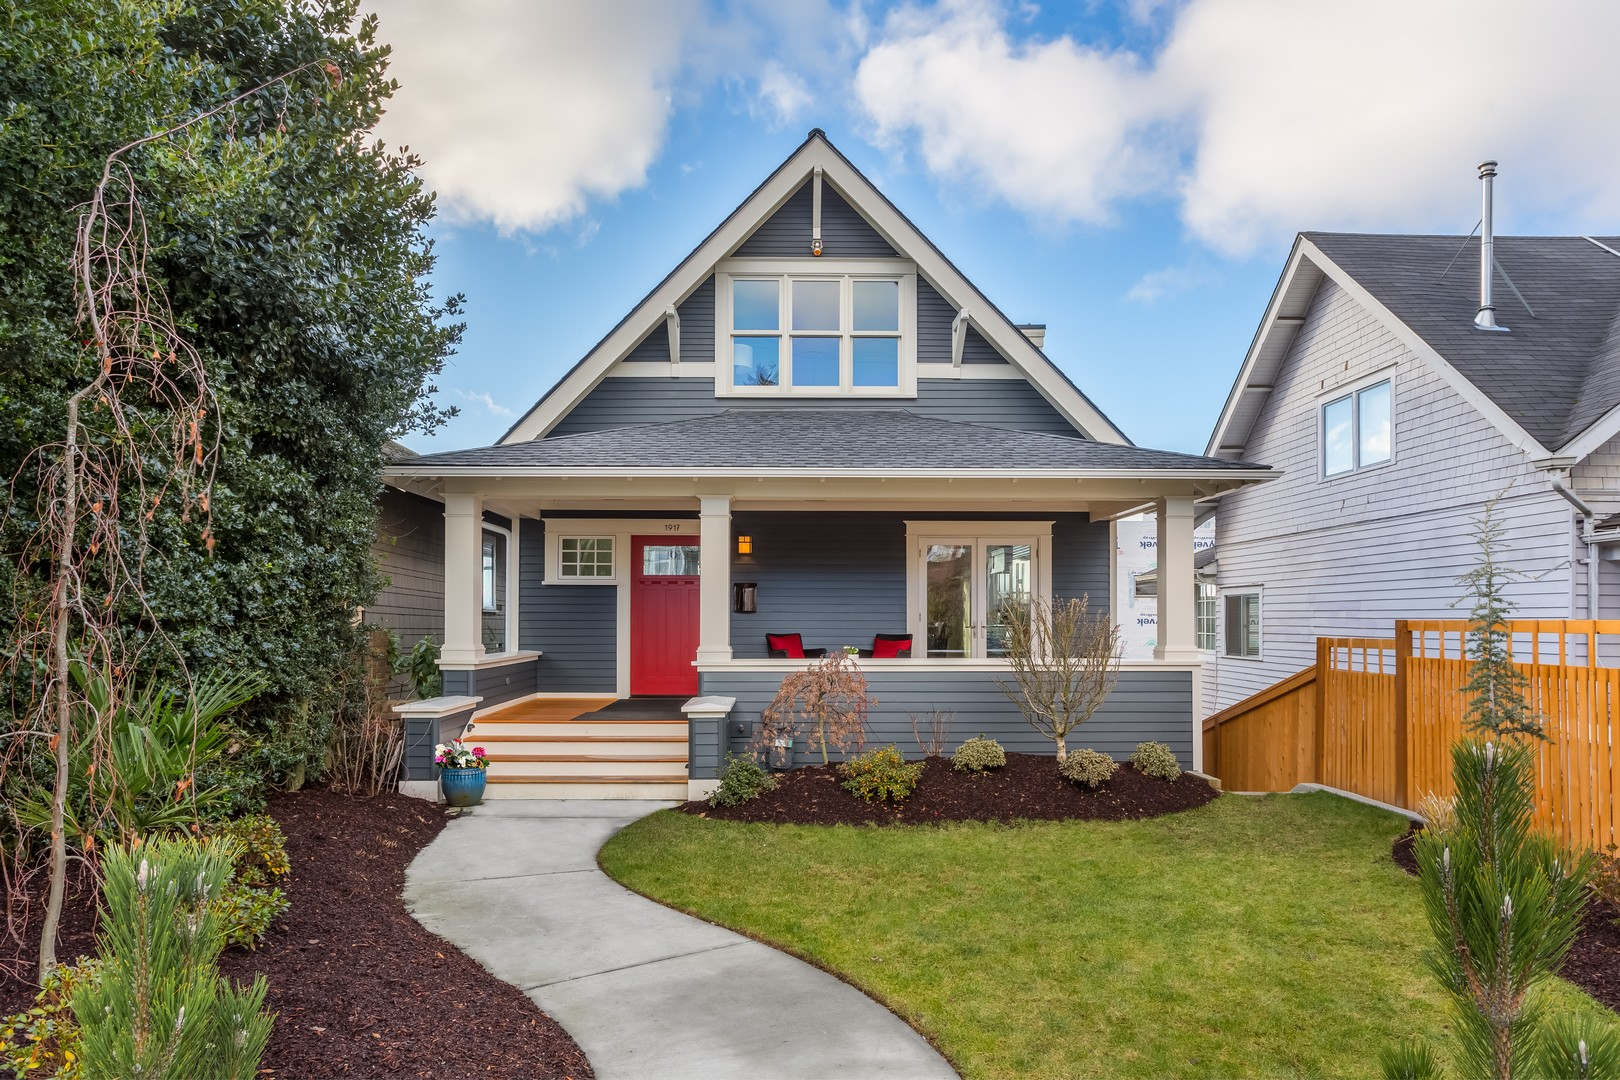 Single Family Home for Sale at 1917 9th Ave W Seattle, Washington, 98119 United States